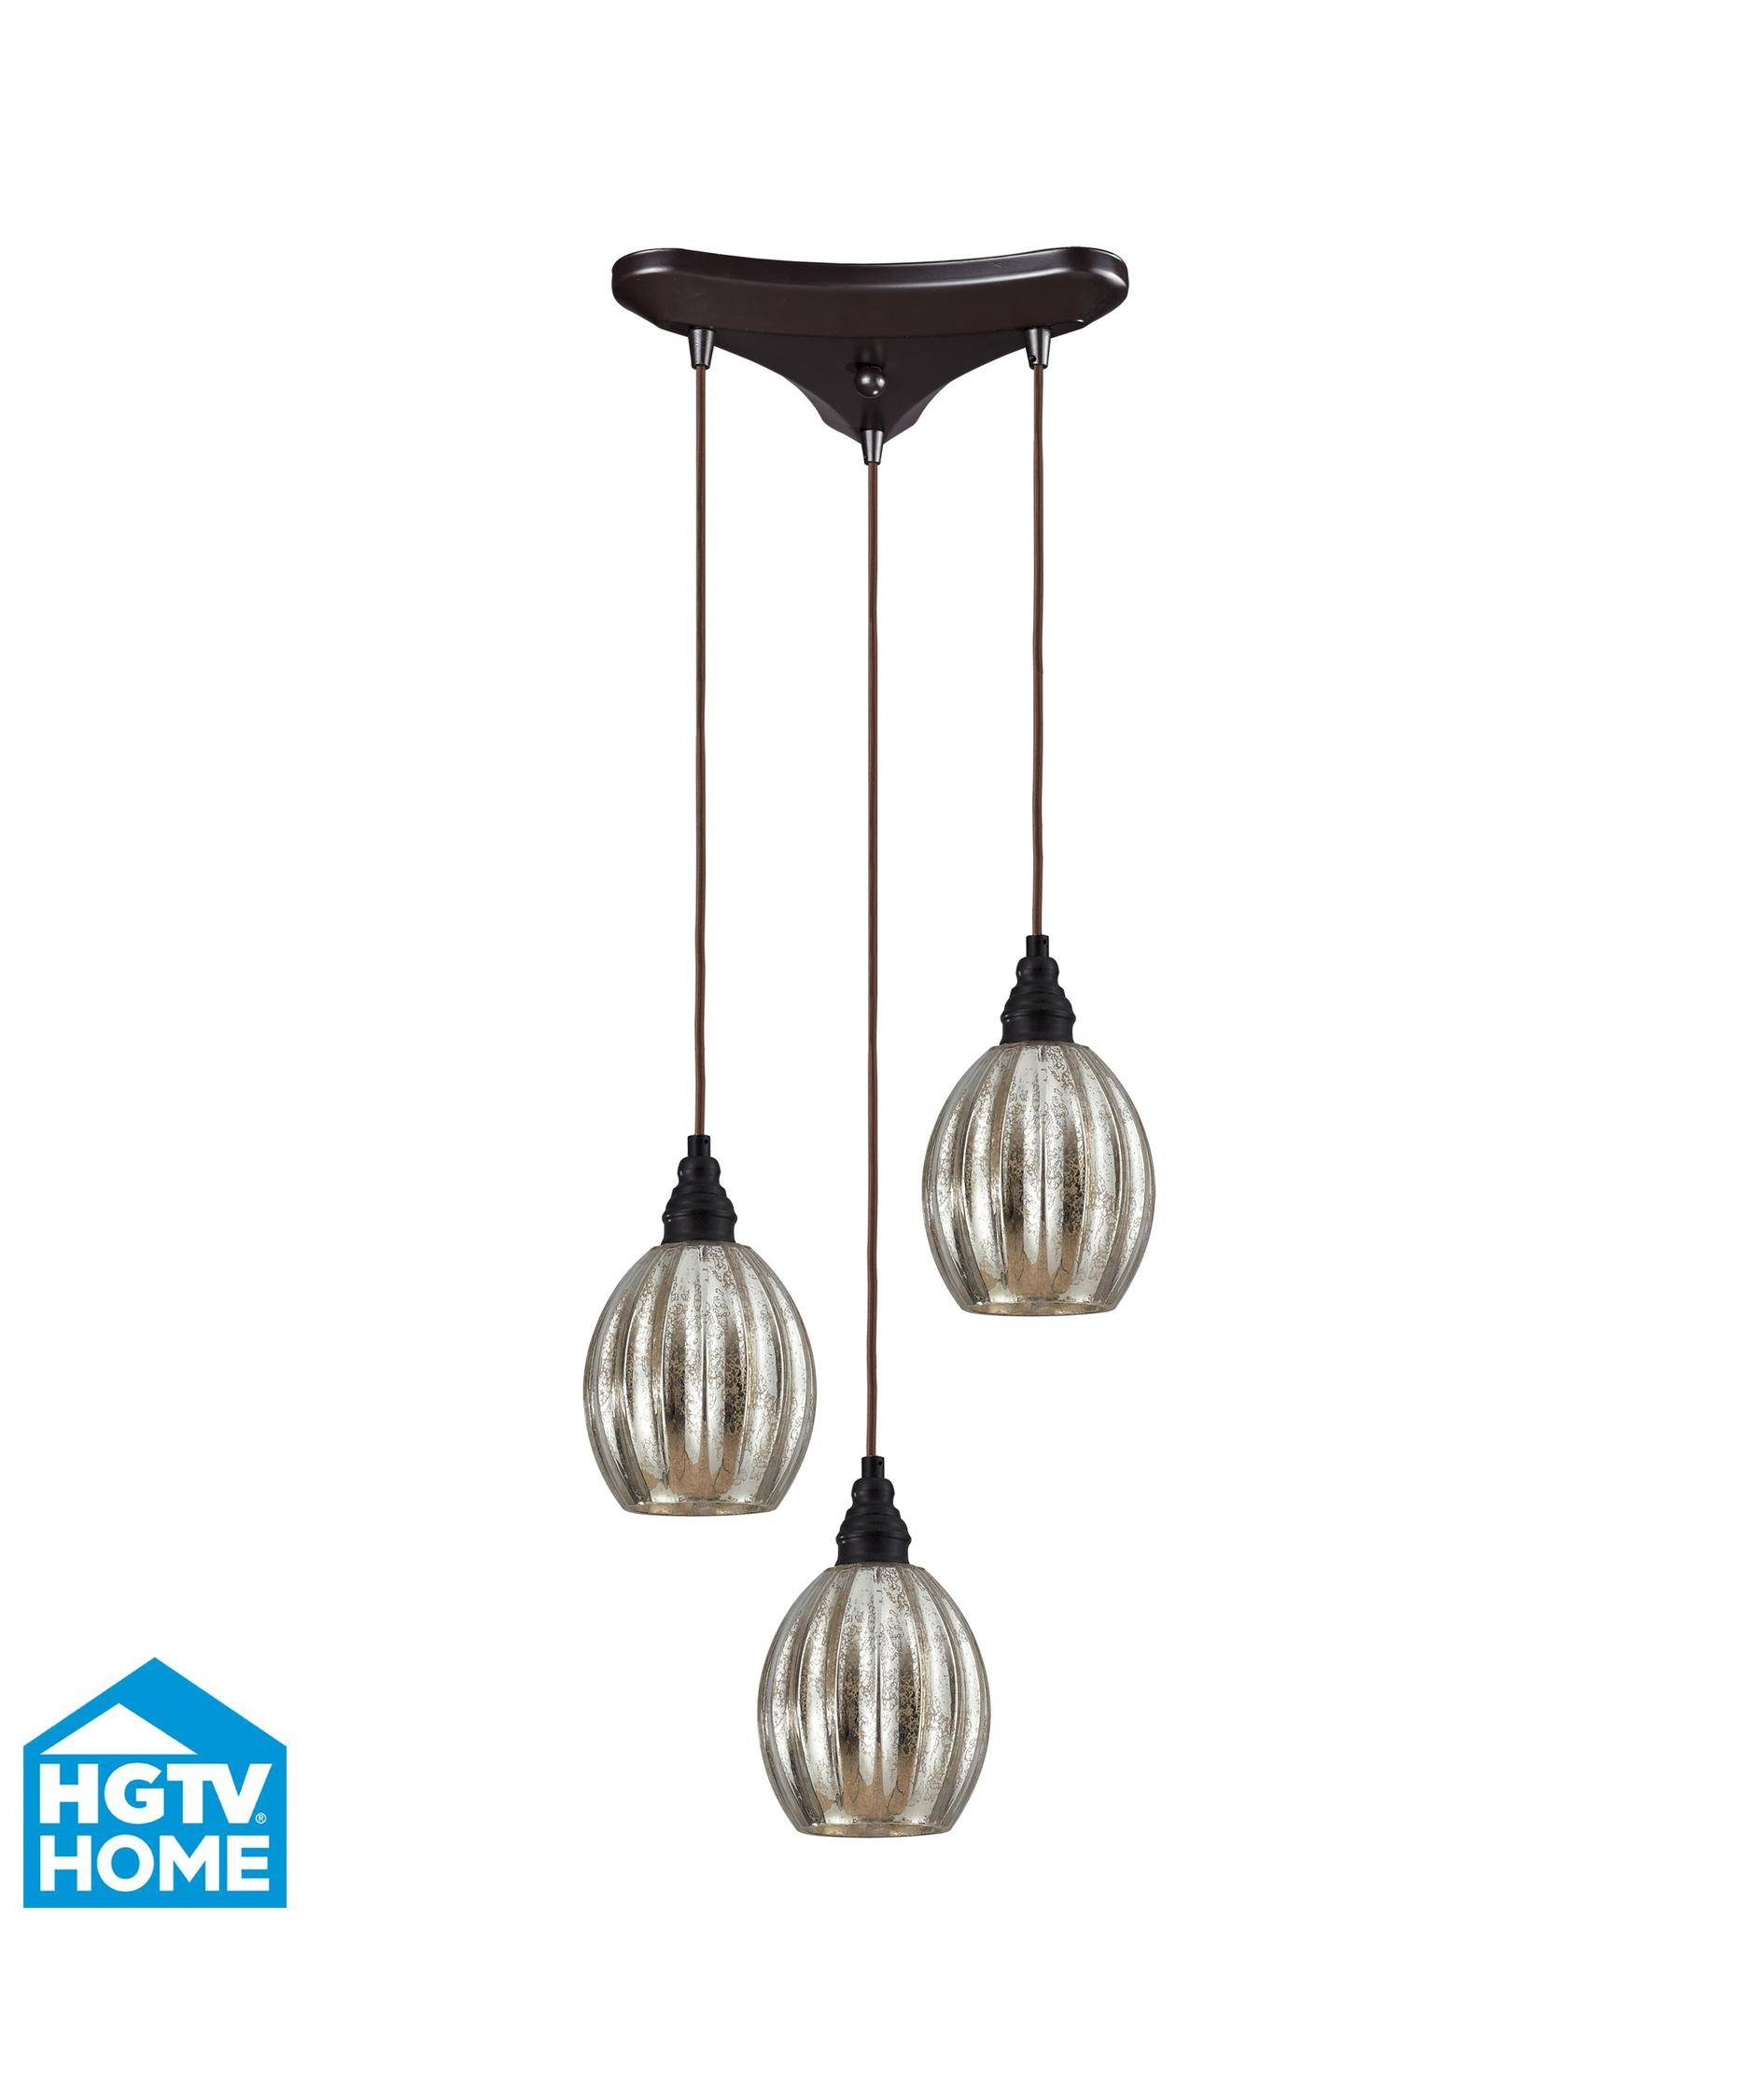 Elk Lighting 46007-3 Danica 10 Inch Wide 3 Light Multi Pendant pertaining to 3 Pendant Lights Kits (Image 3 of 15)